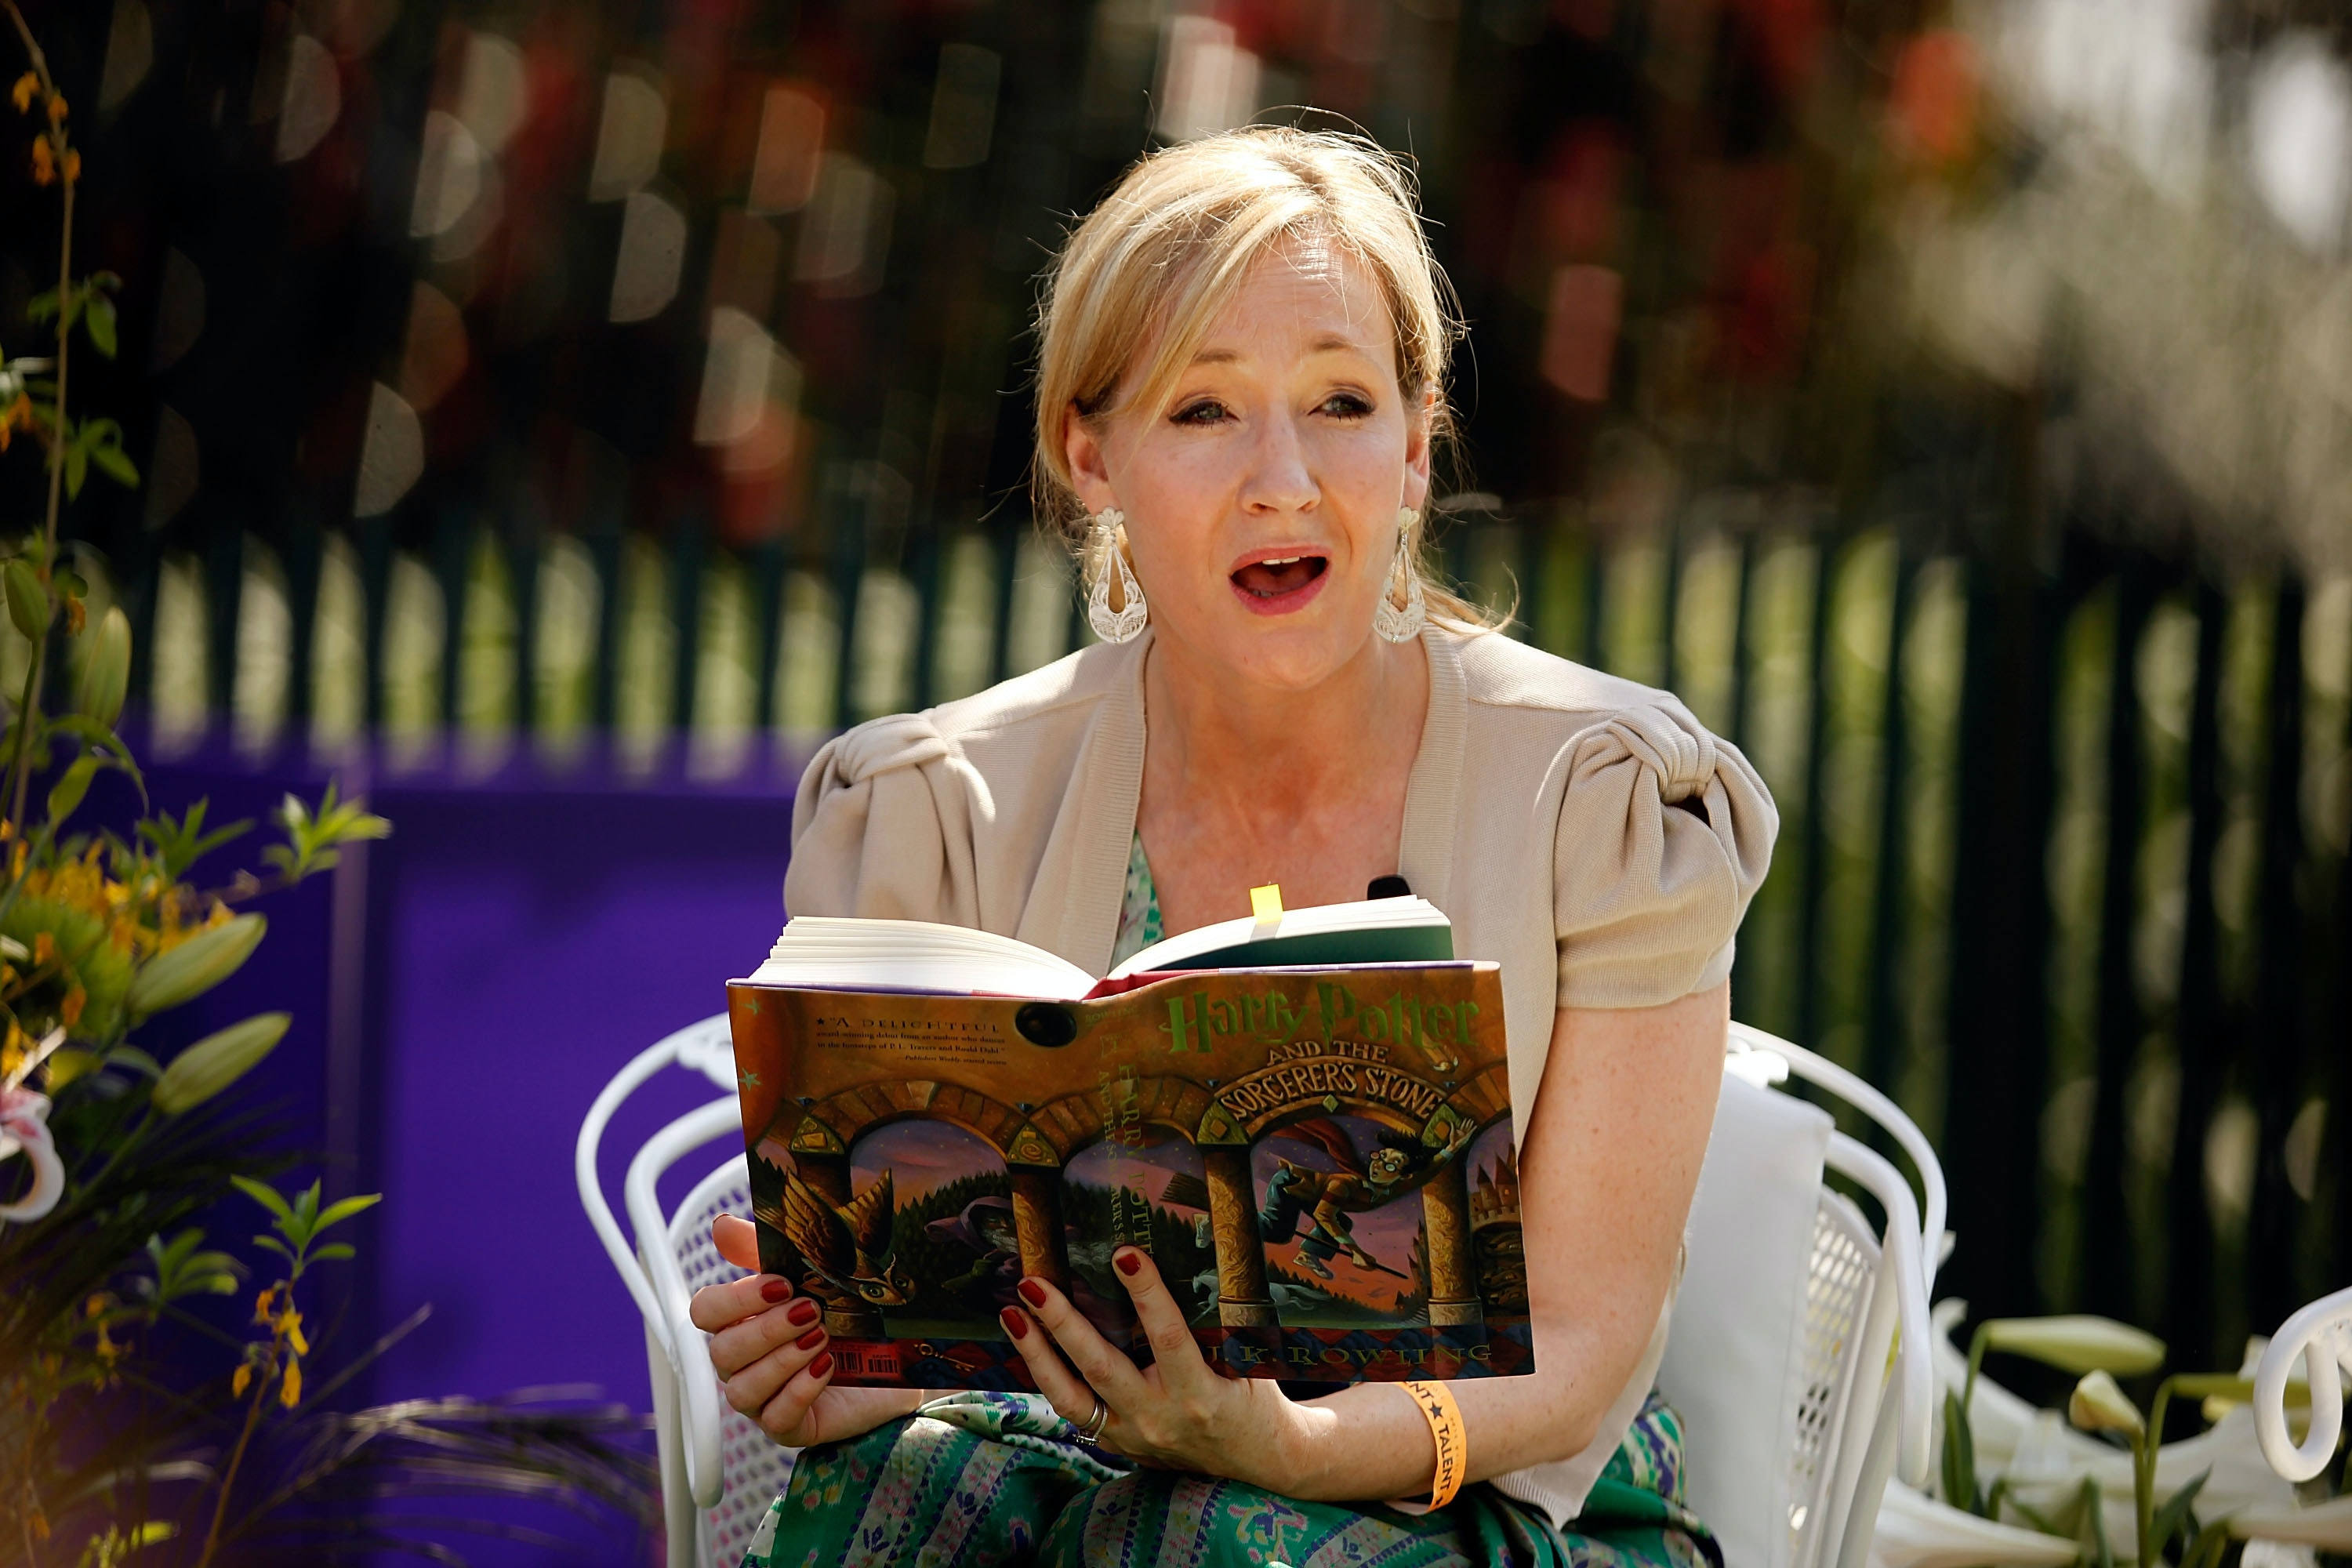 Is writing my college application essay on J.K. Rowling a good idea?